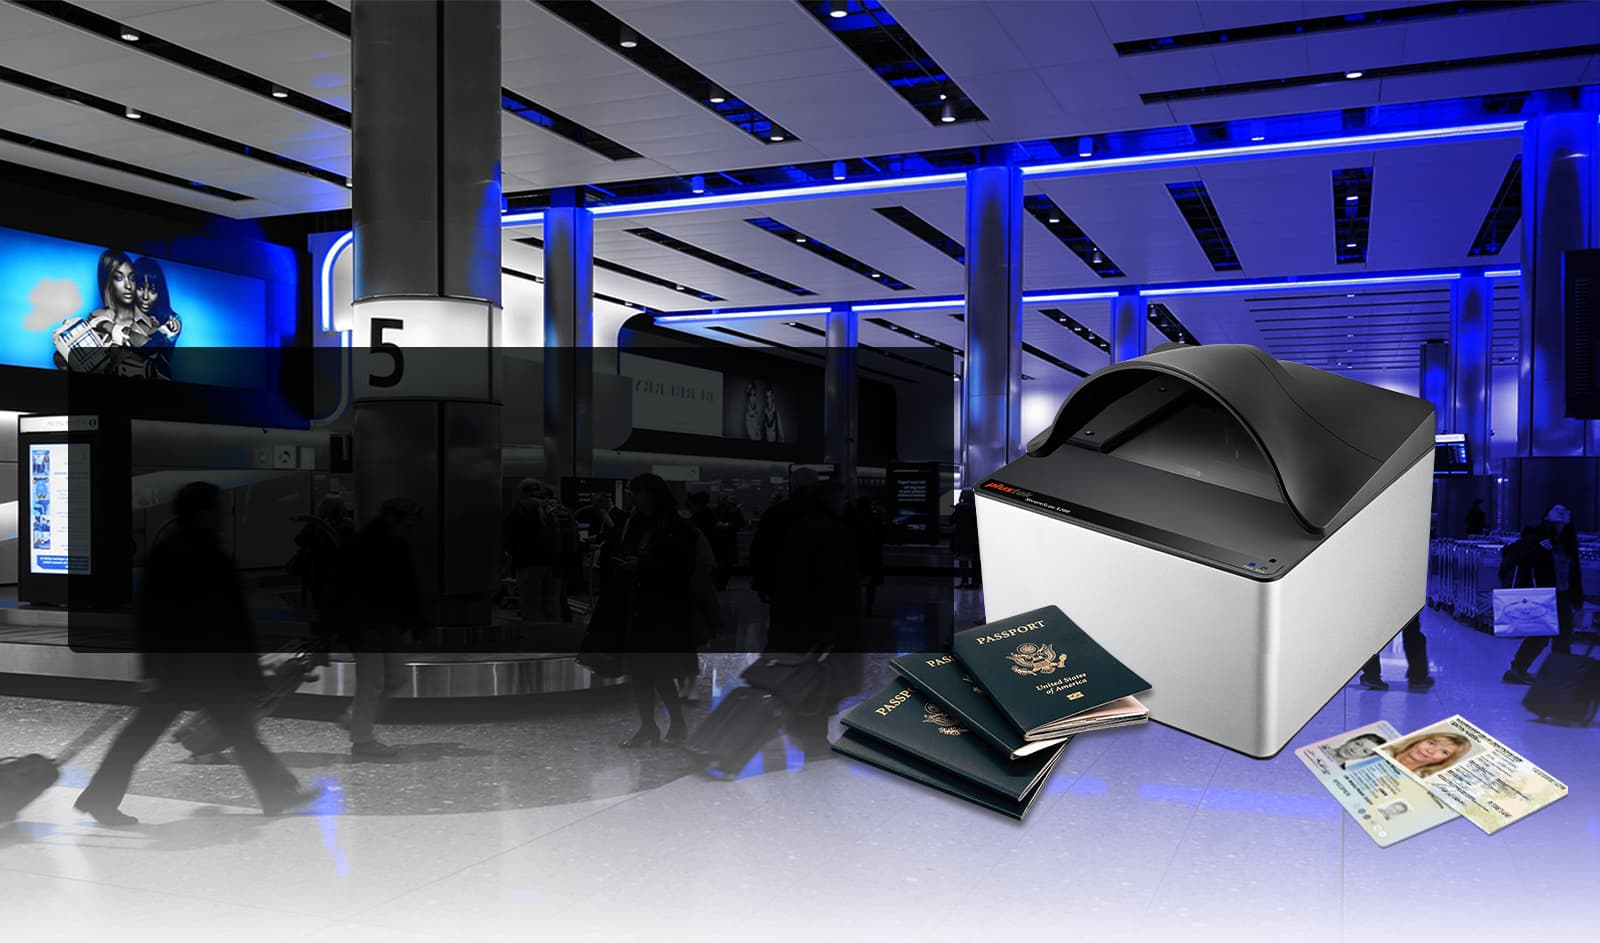 Rapidly capture and verify identity documents.